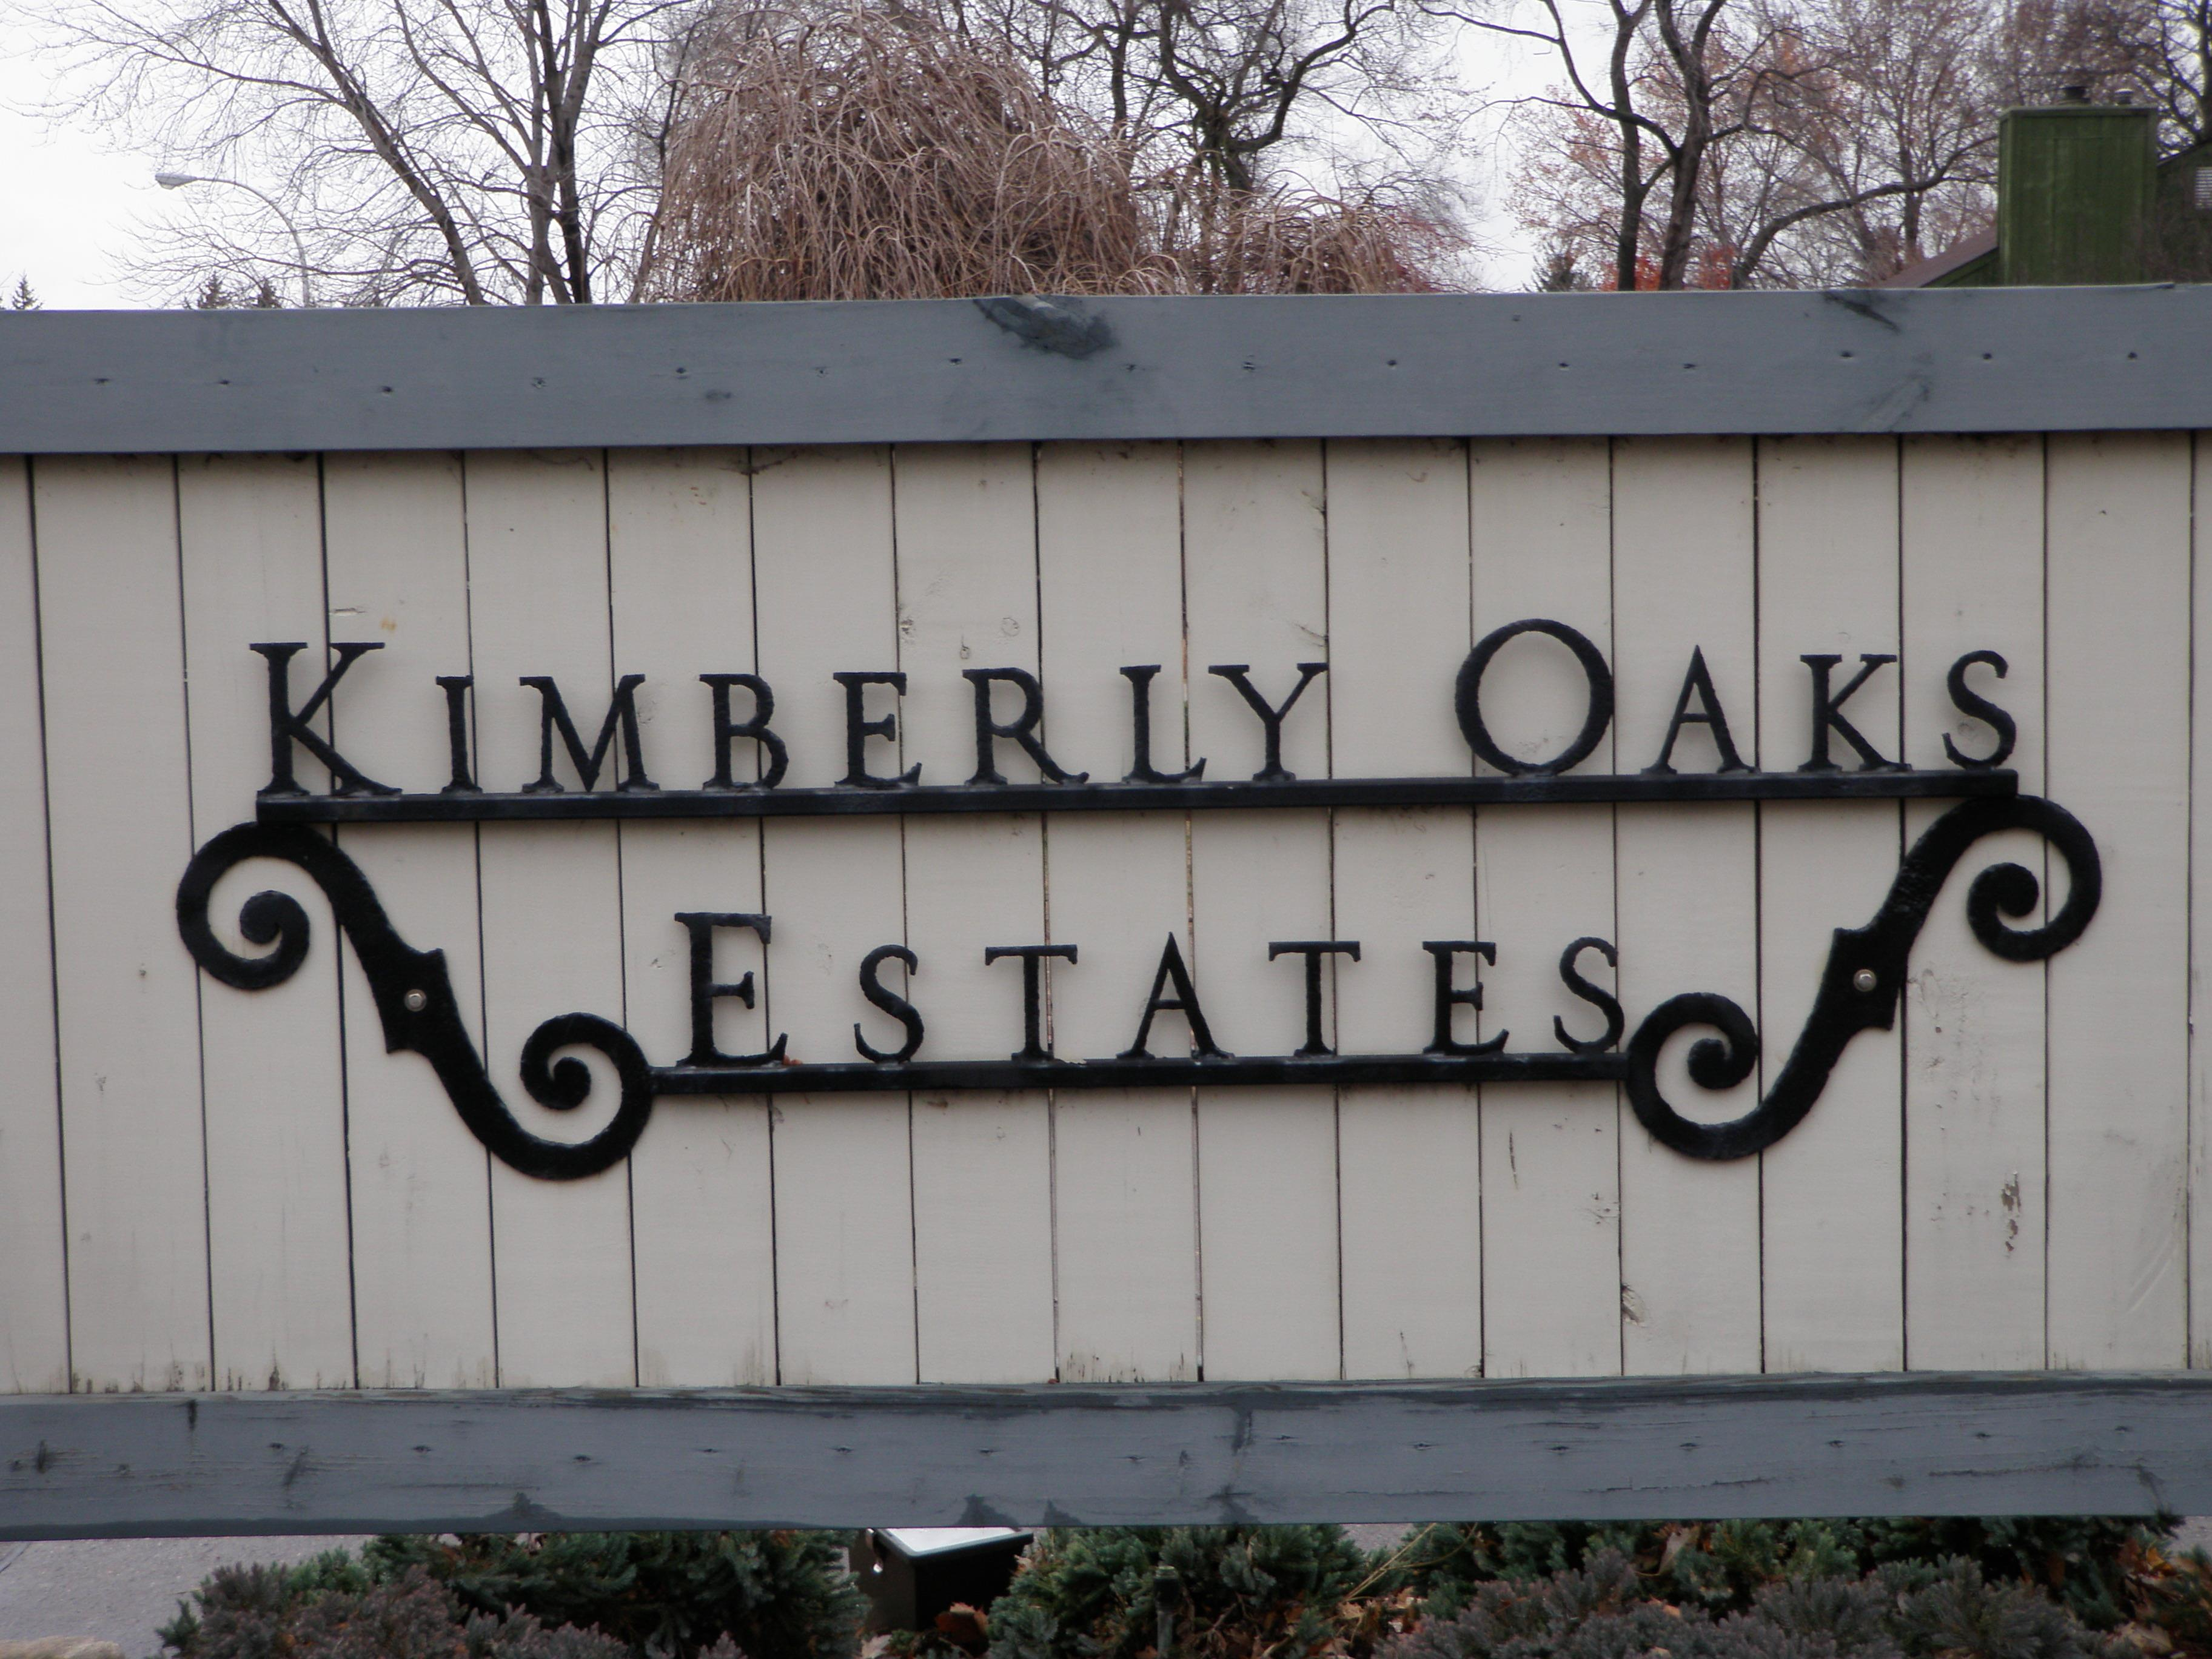 Kimberly Oaks Estates Livonia Michigan